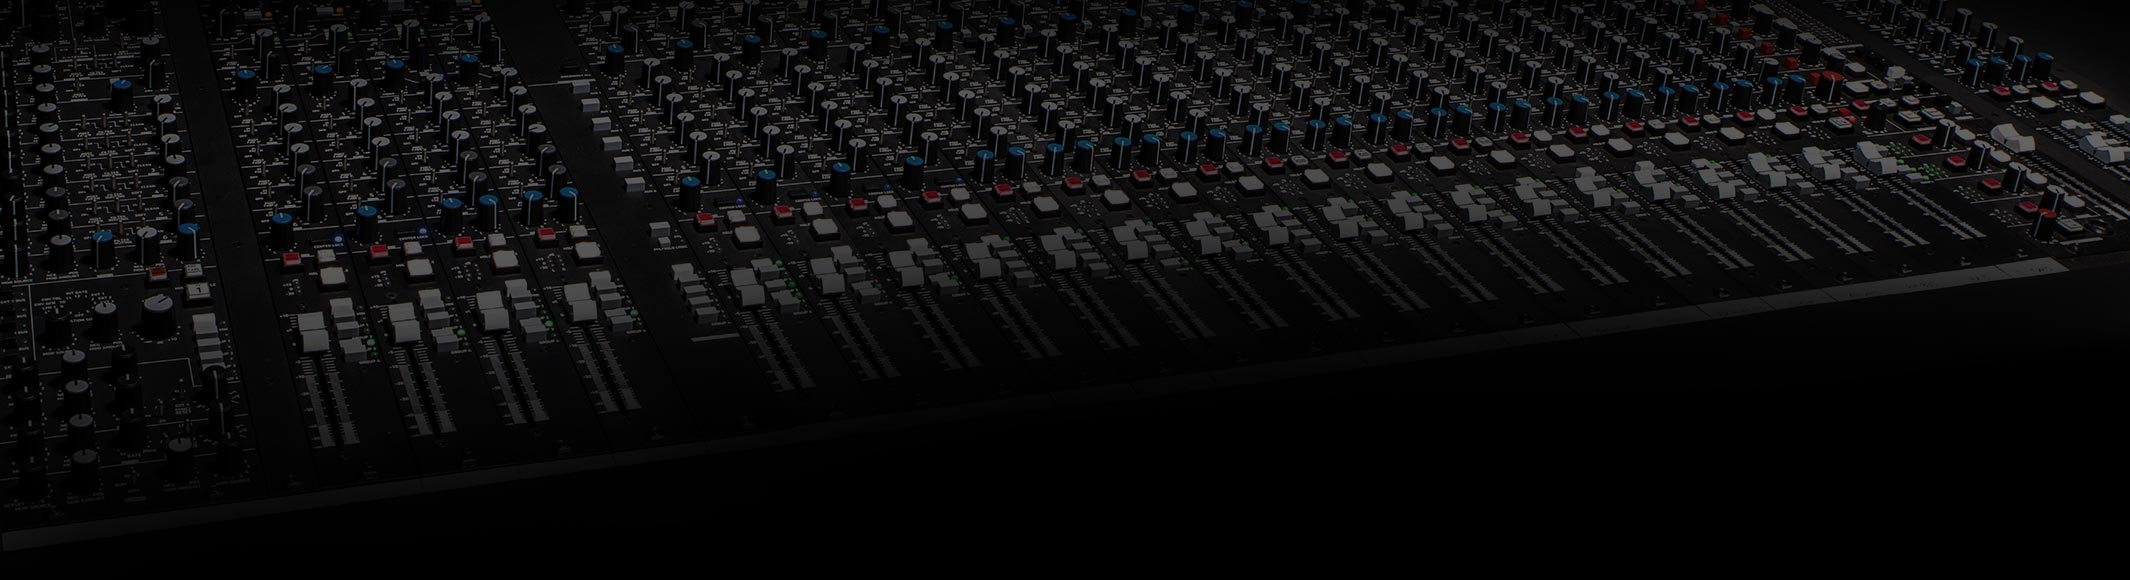 AM1 Mixing Console Product Shot